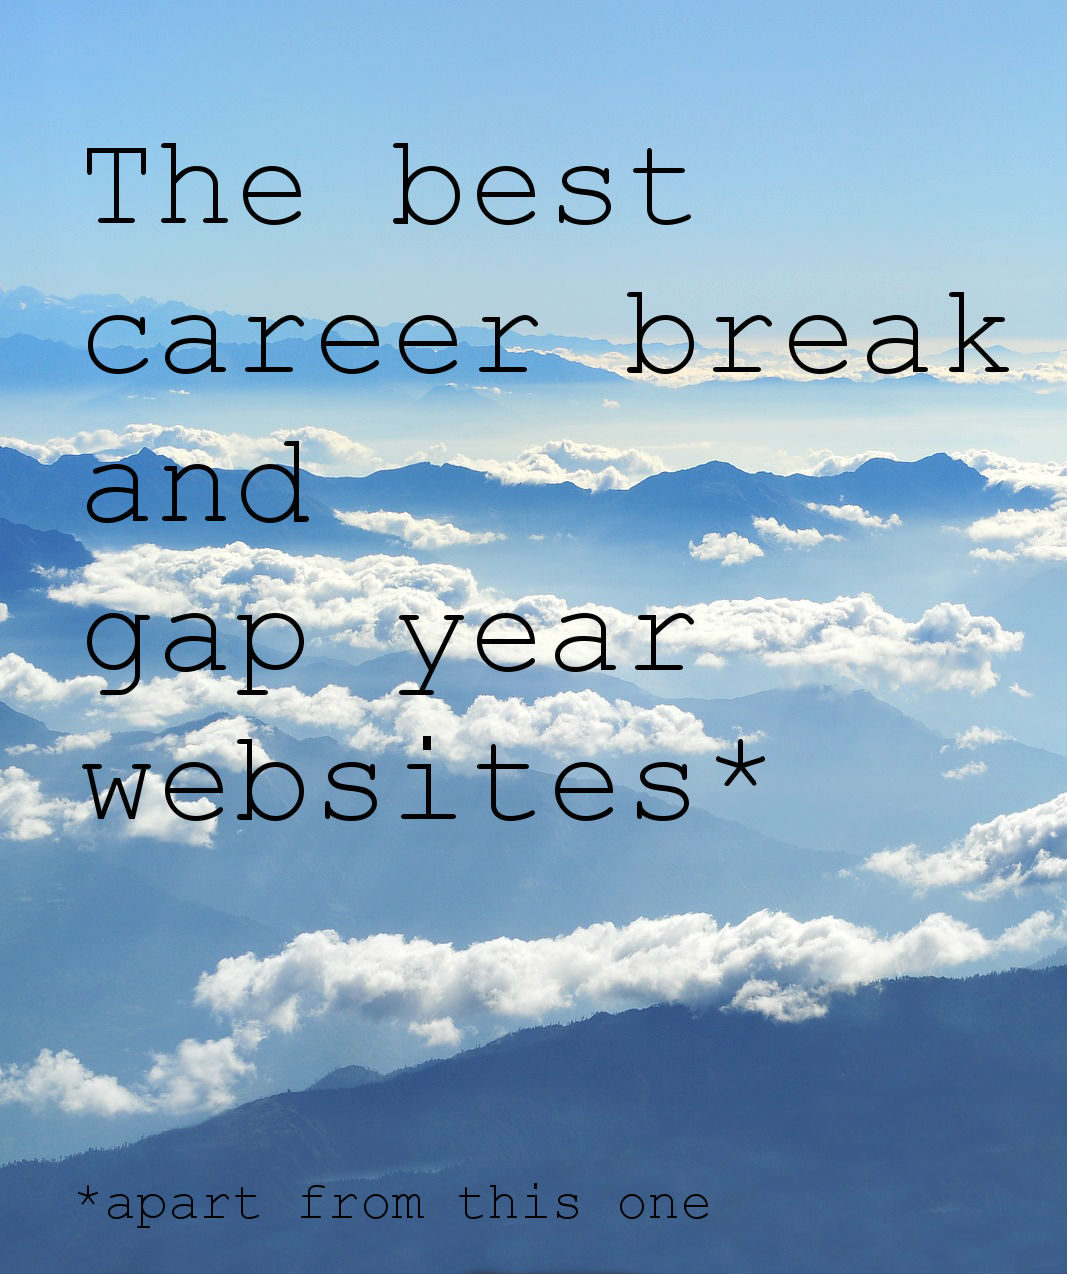 The best career break and gap year websites (apart from this one)